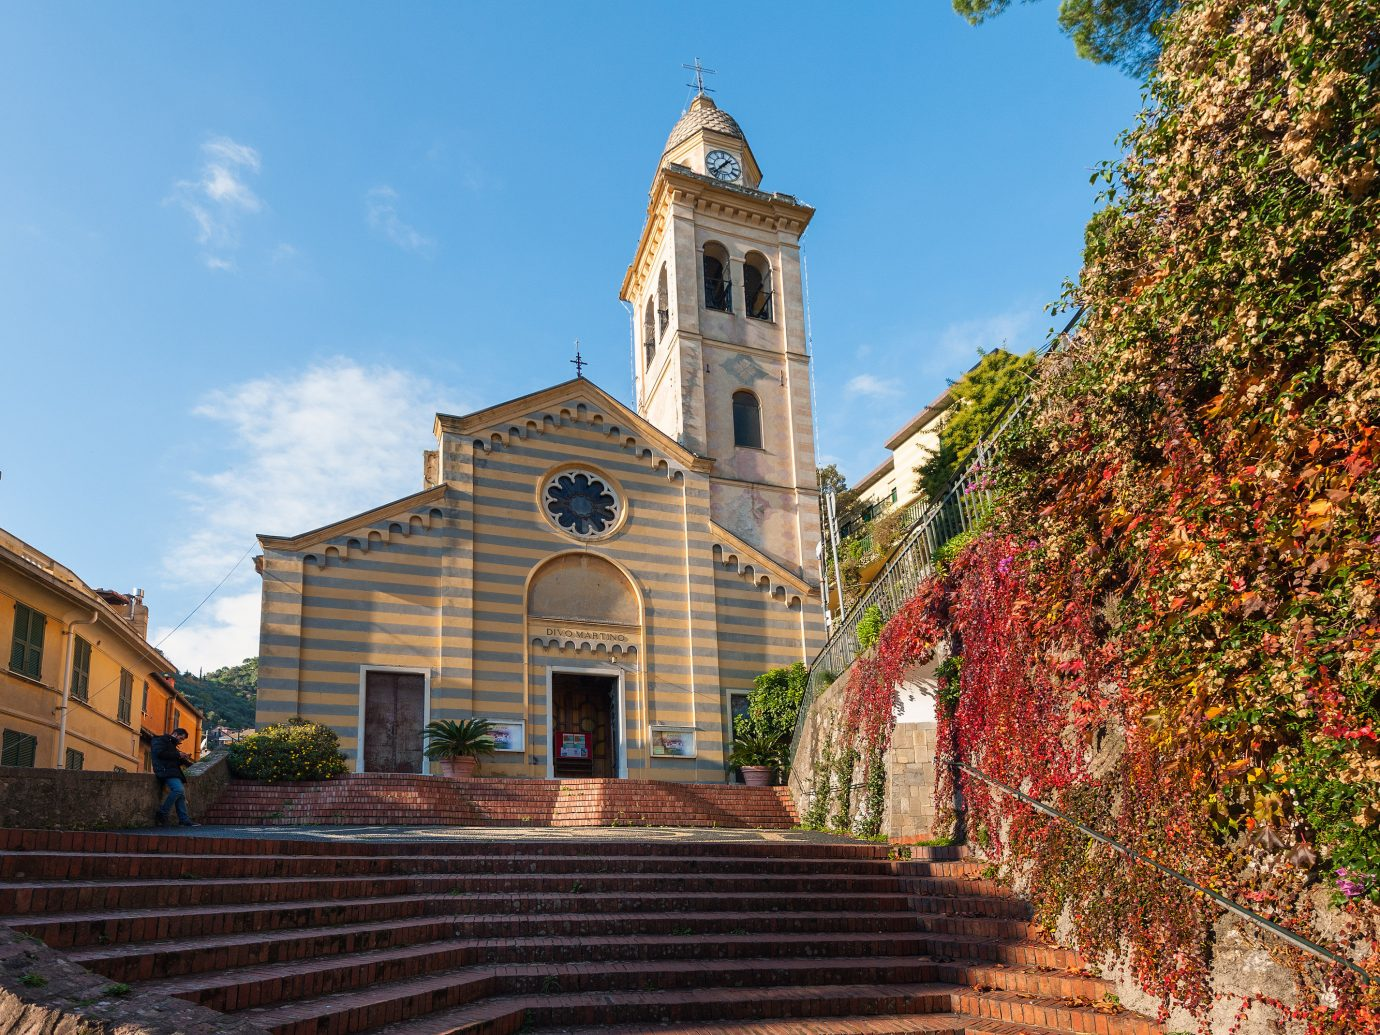 Italy Trip Ideas sky landmark building Church historic site tree parish place of worship City estate facade medieval architecture real estate steeple cathedral basilica spanish missions in california bell tower